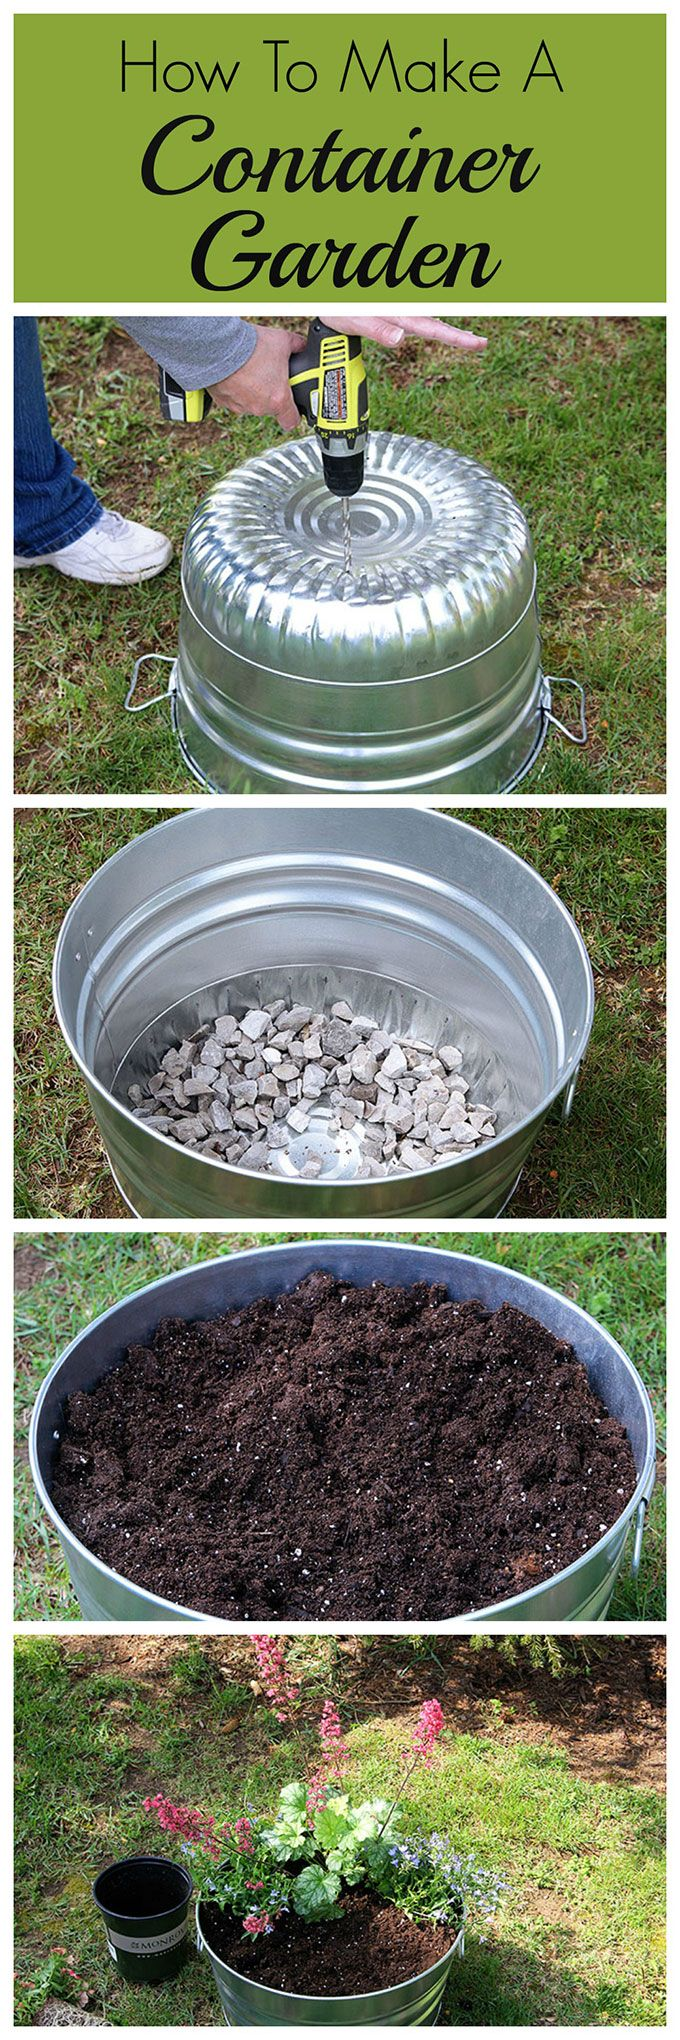 This how to guide for container gardening includes plant selection, instructions to prepare your container and a tip to make potting soil go farther.